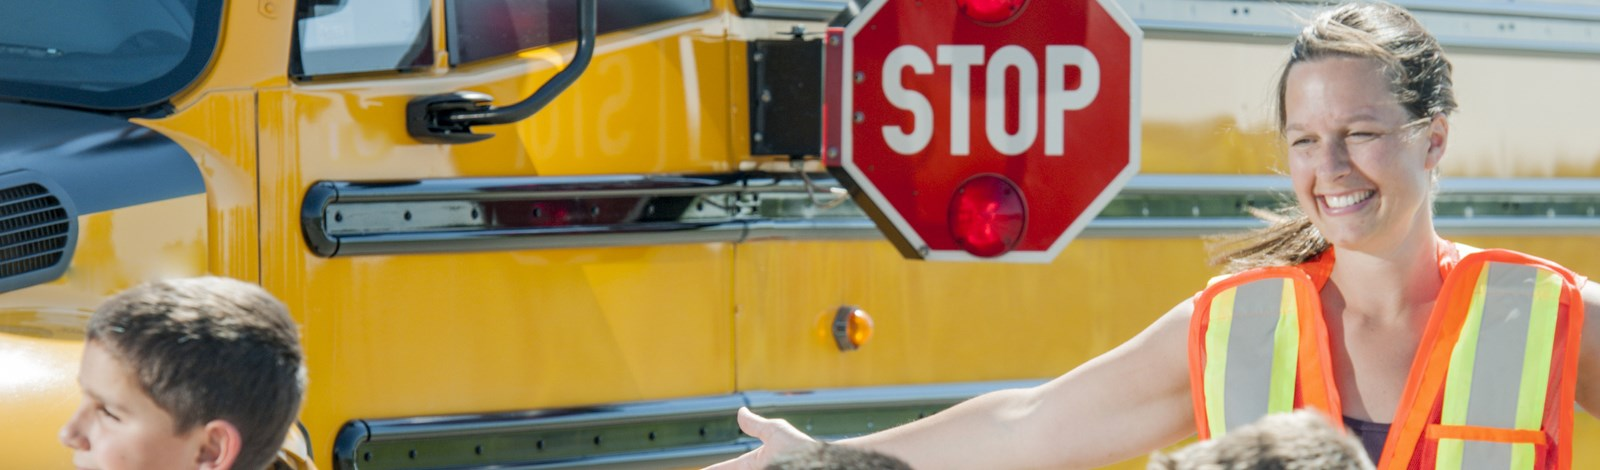 School bus with Stop sign arm out with the words Stop on the sign